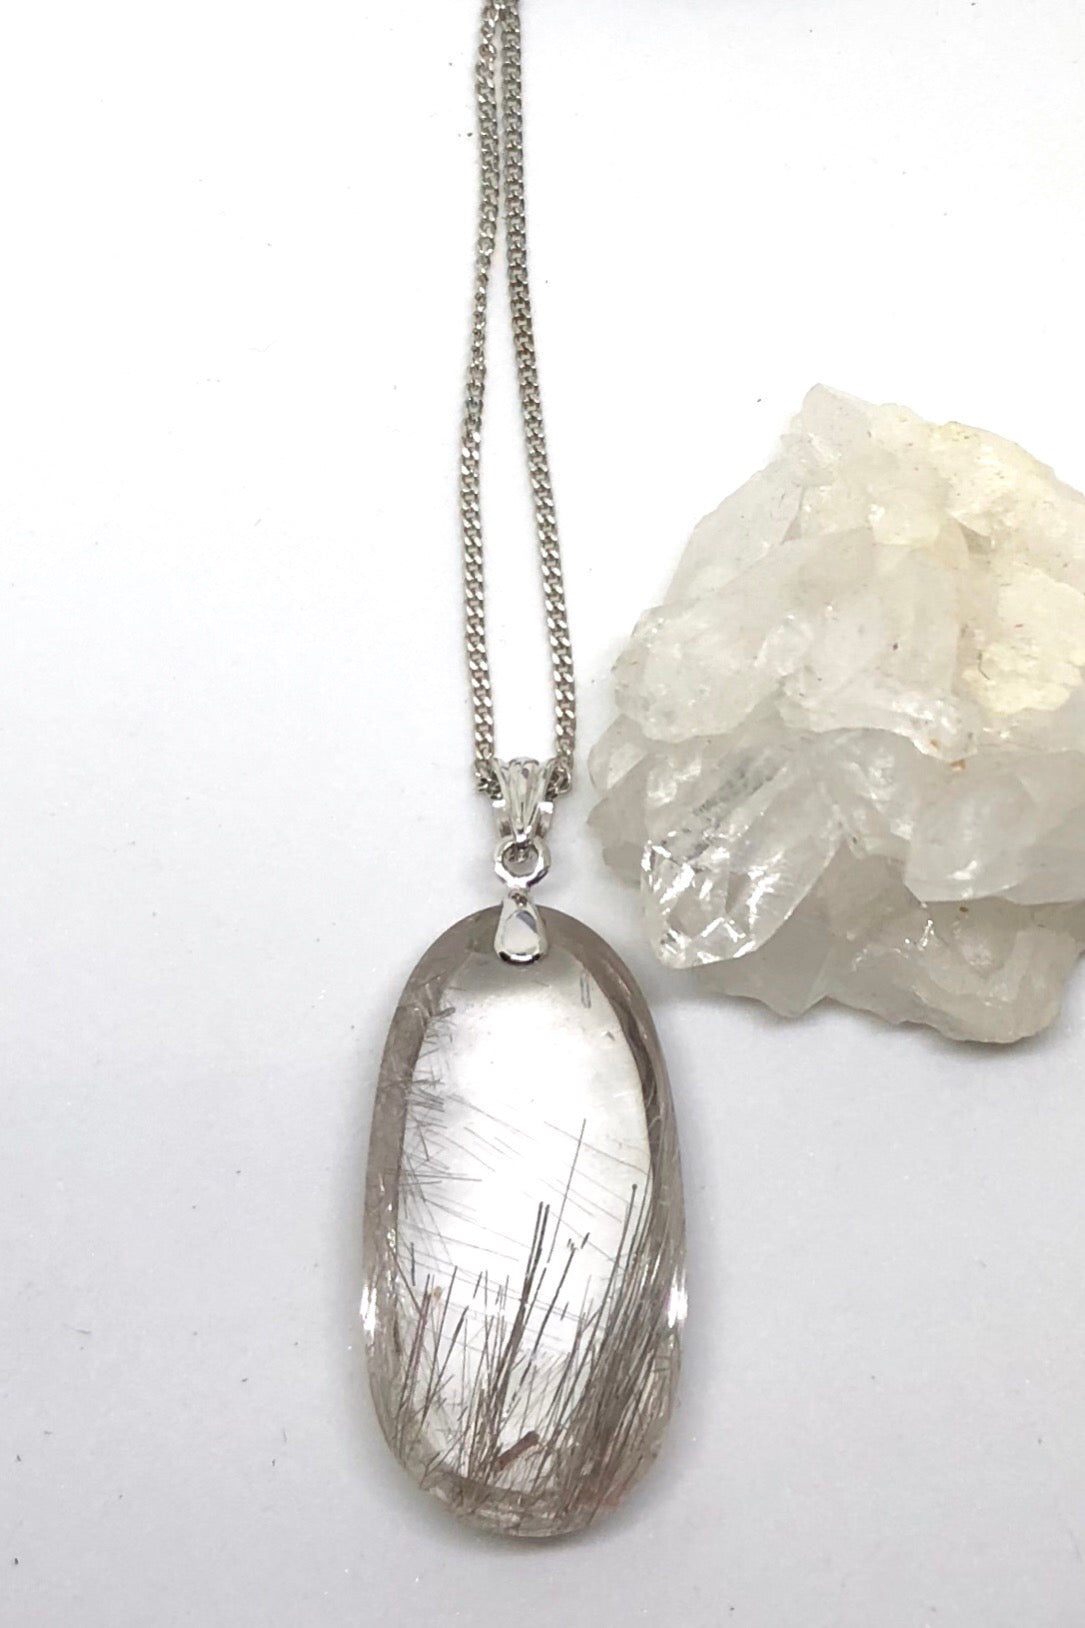 Pendant of Rutilated Quartz Crystal on a Silver Chain 3